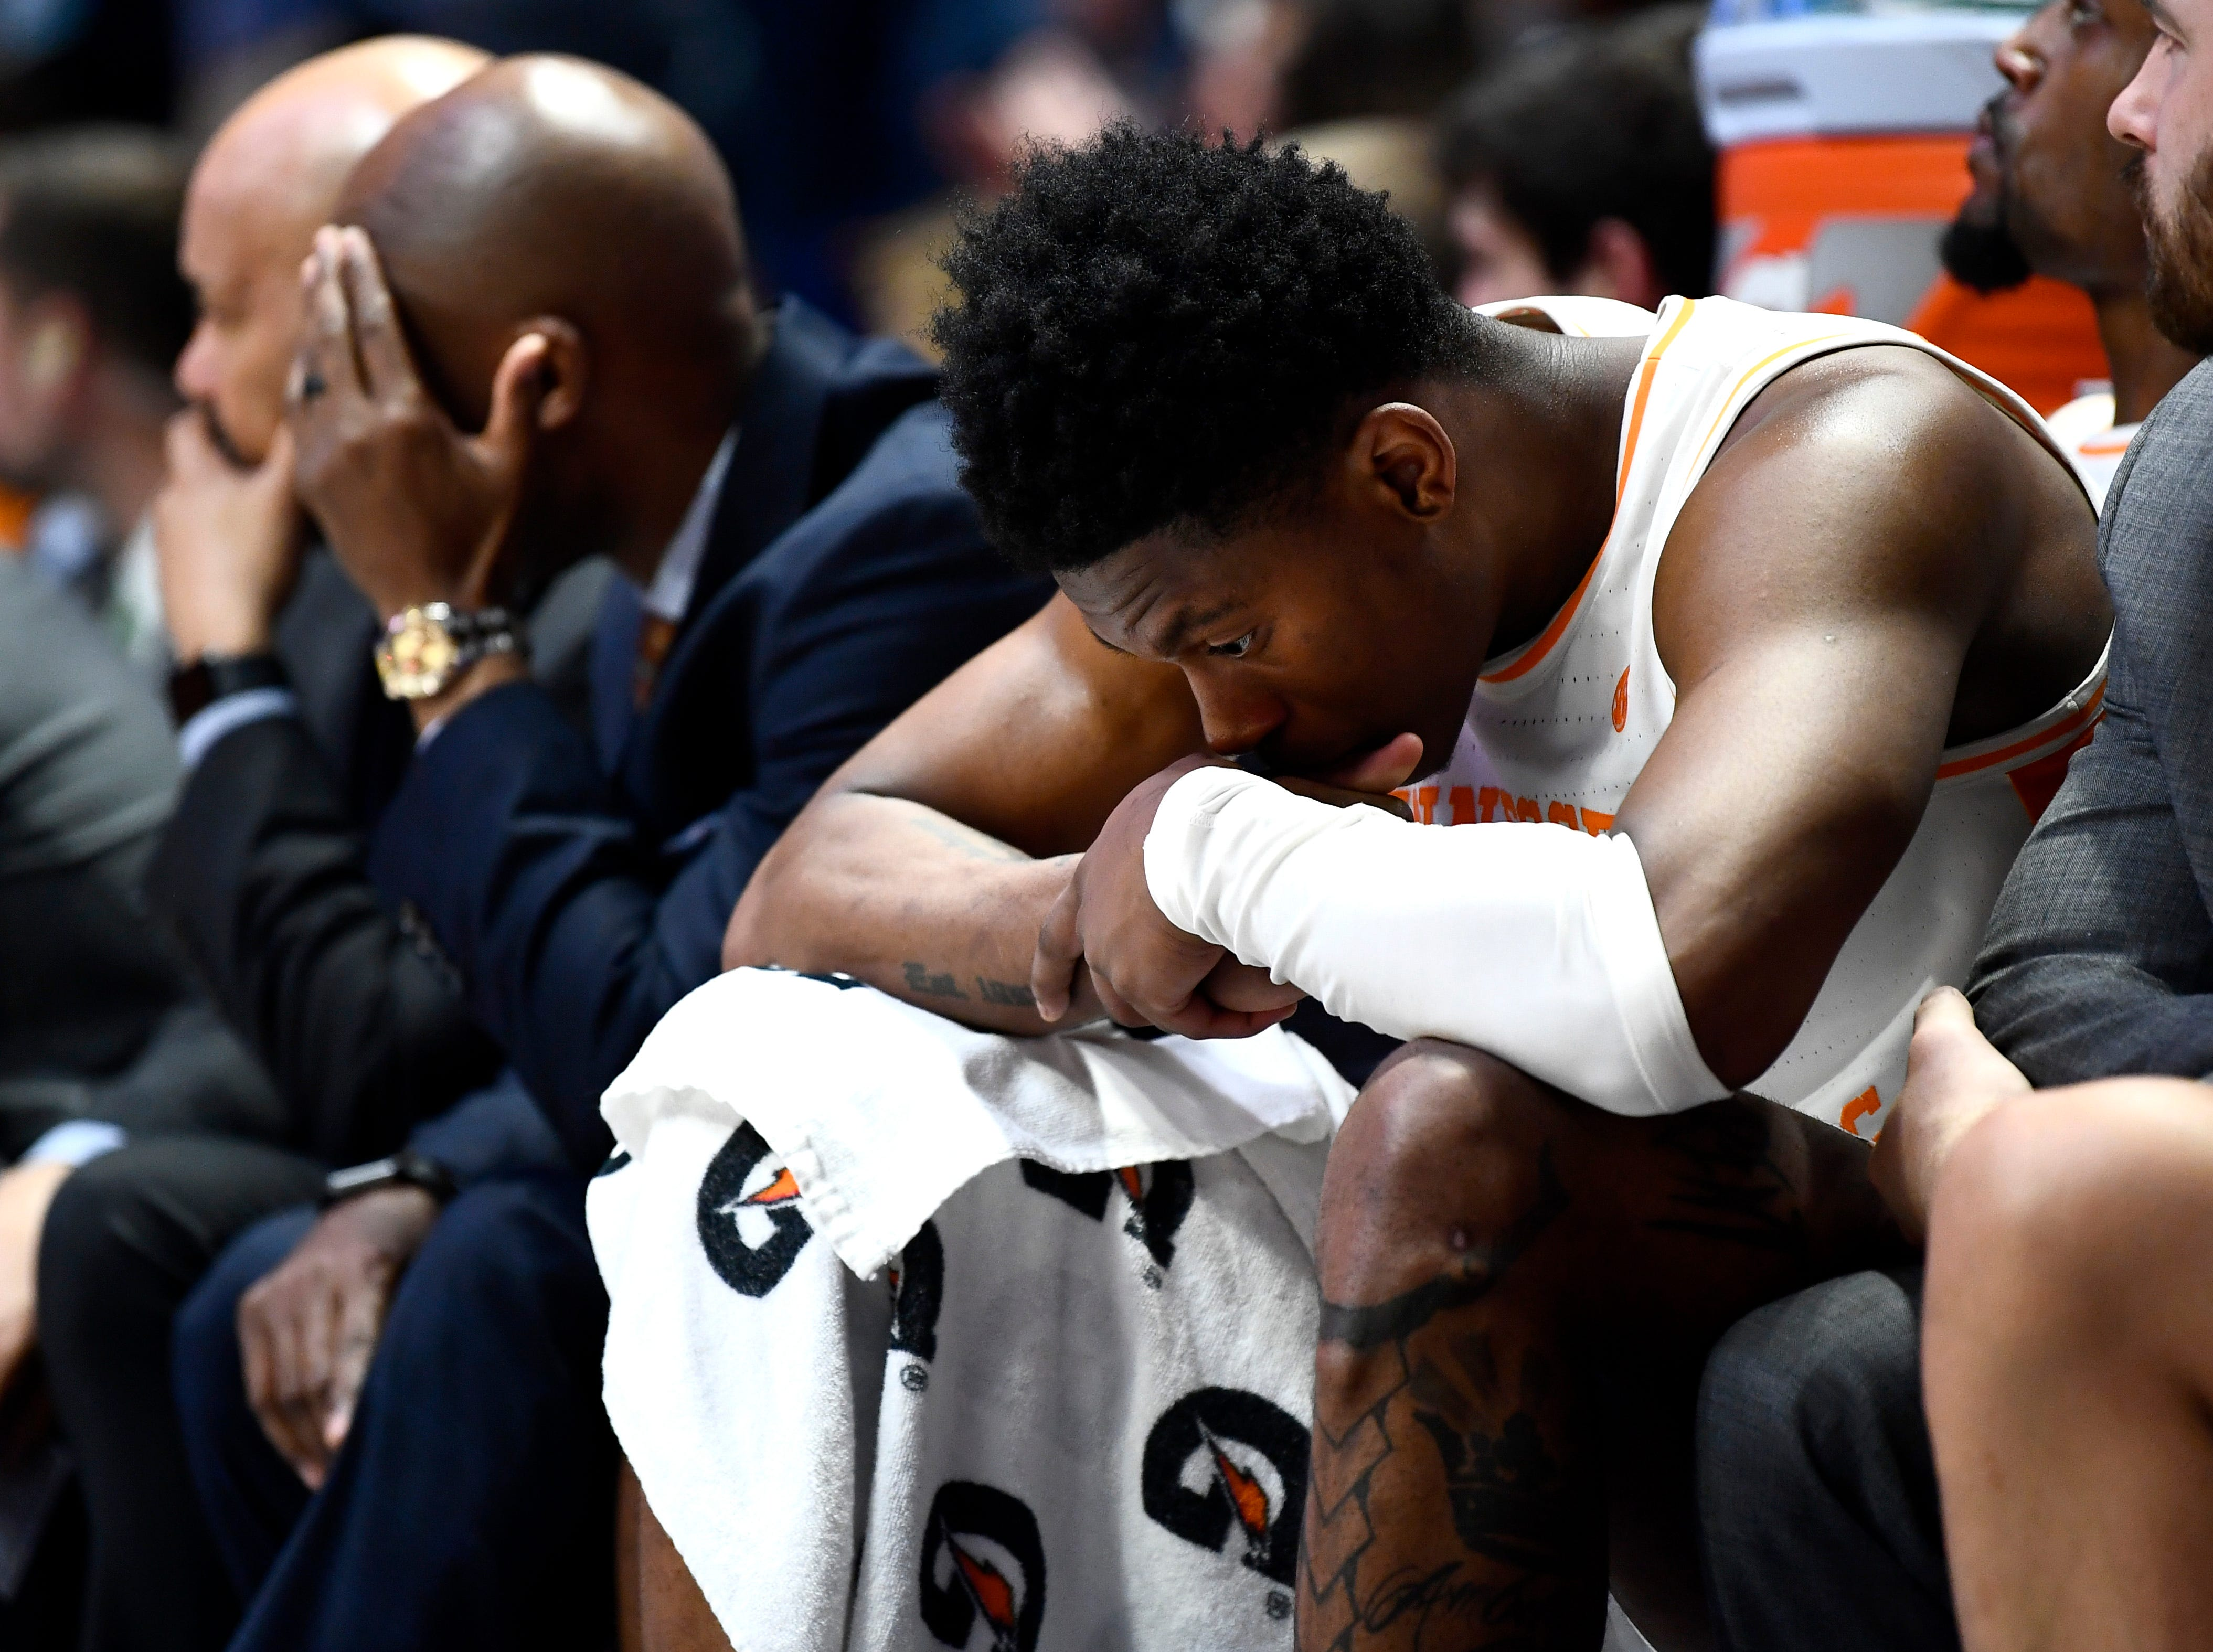 Tennessee guard Admiral Schofield (5) reacts on the bench late in the second half of the team's loss to Auburn in the SEC Men's Basketball Tournament championship game at Bridgestone Arena in Nashville, Tenn., Sunday, March 17, 2019.